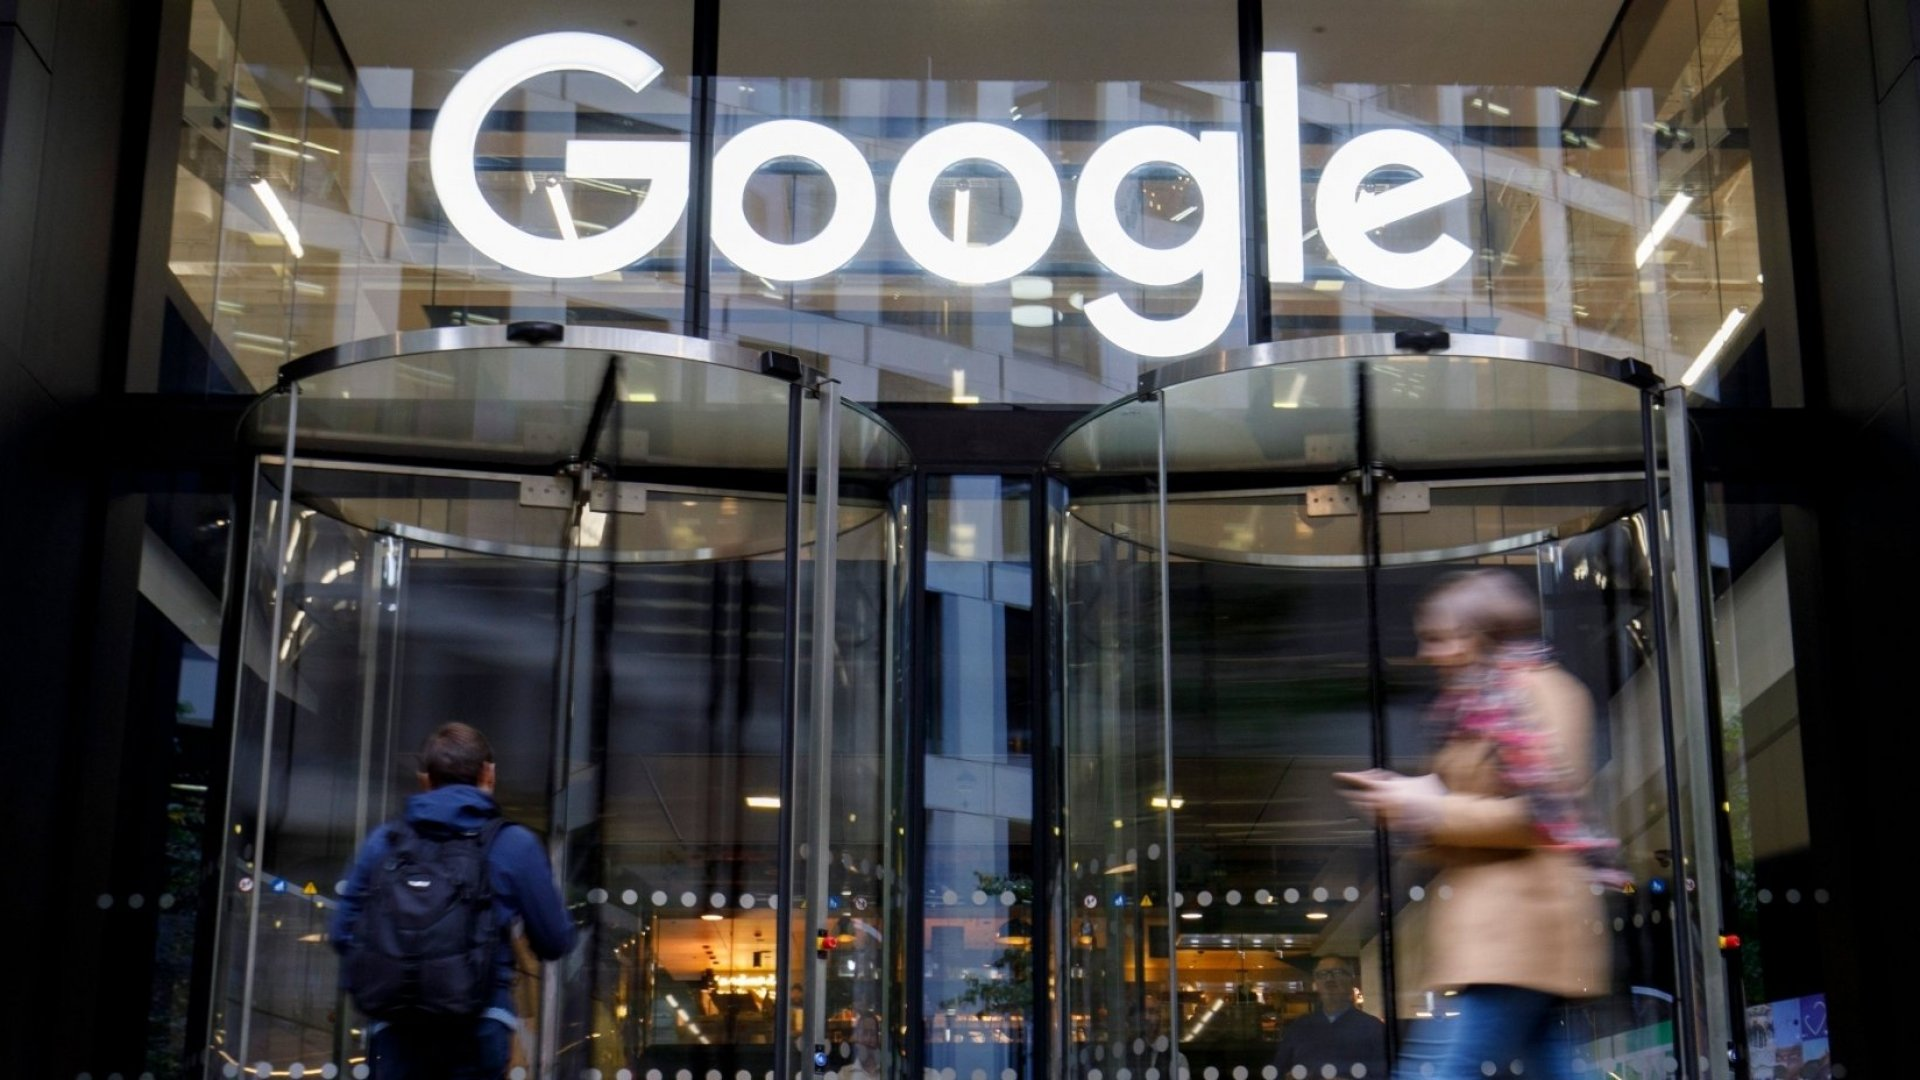 Google Workers Launch Social Media Campaign to Pressure Employers to Drop Forced Arbitration